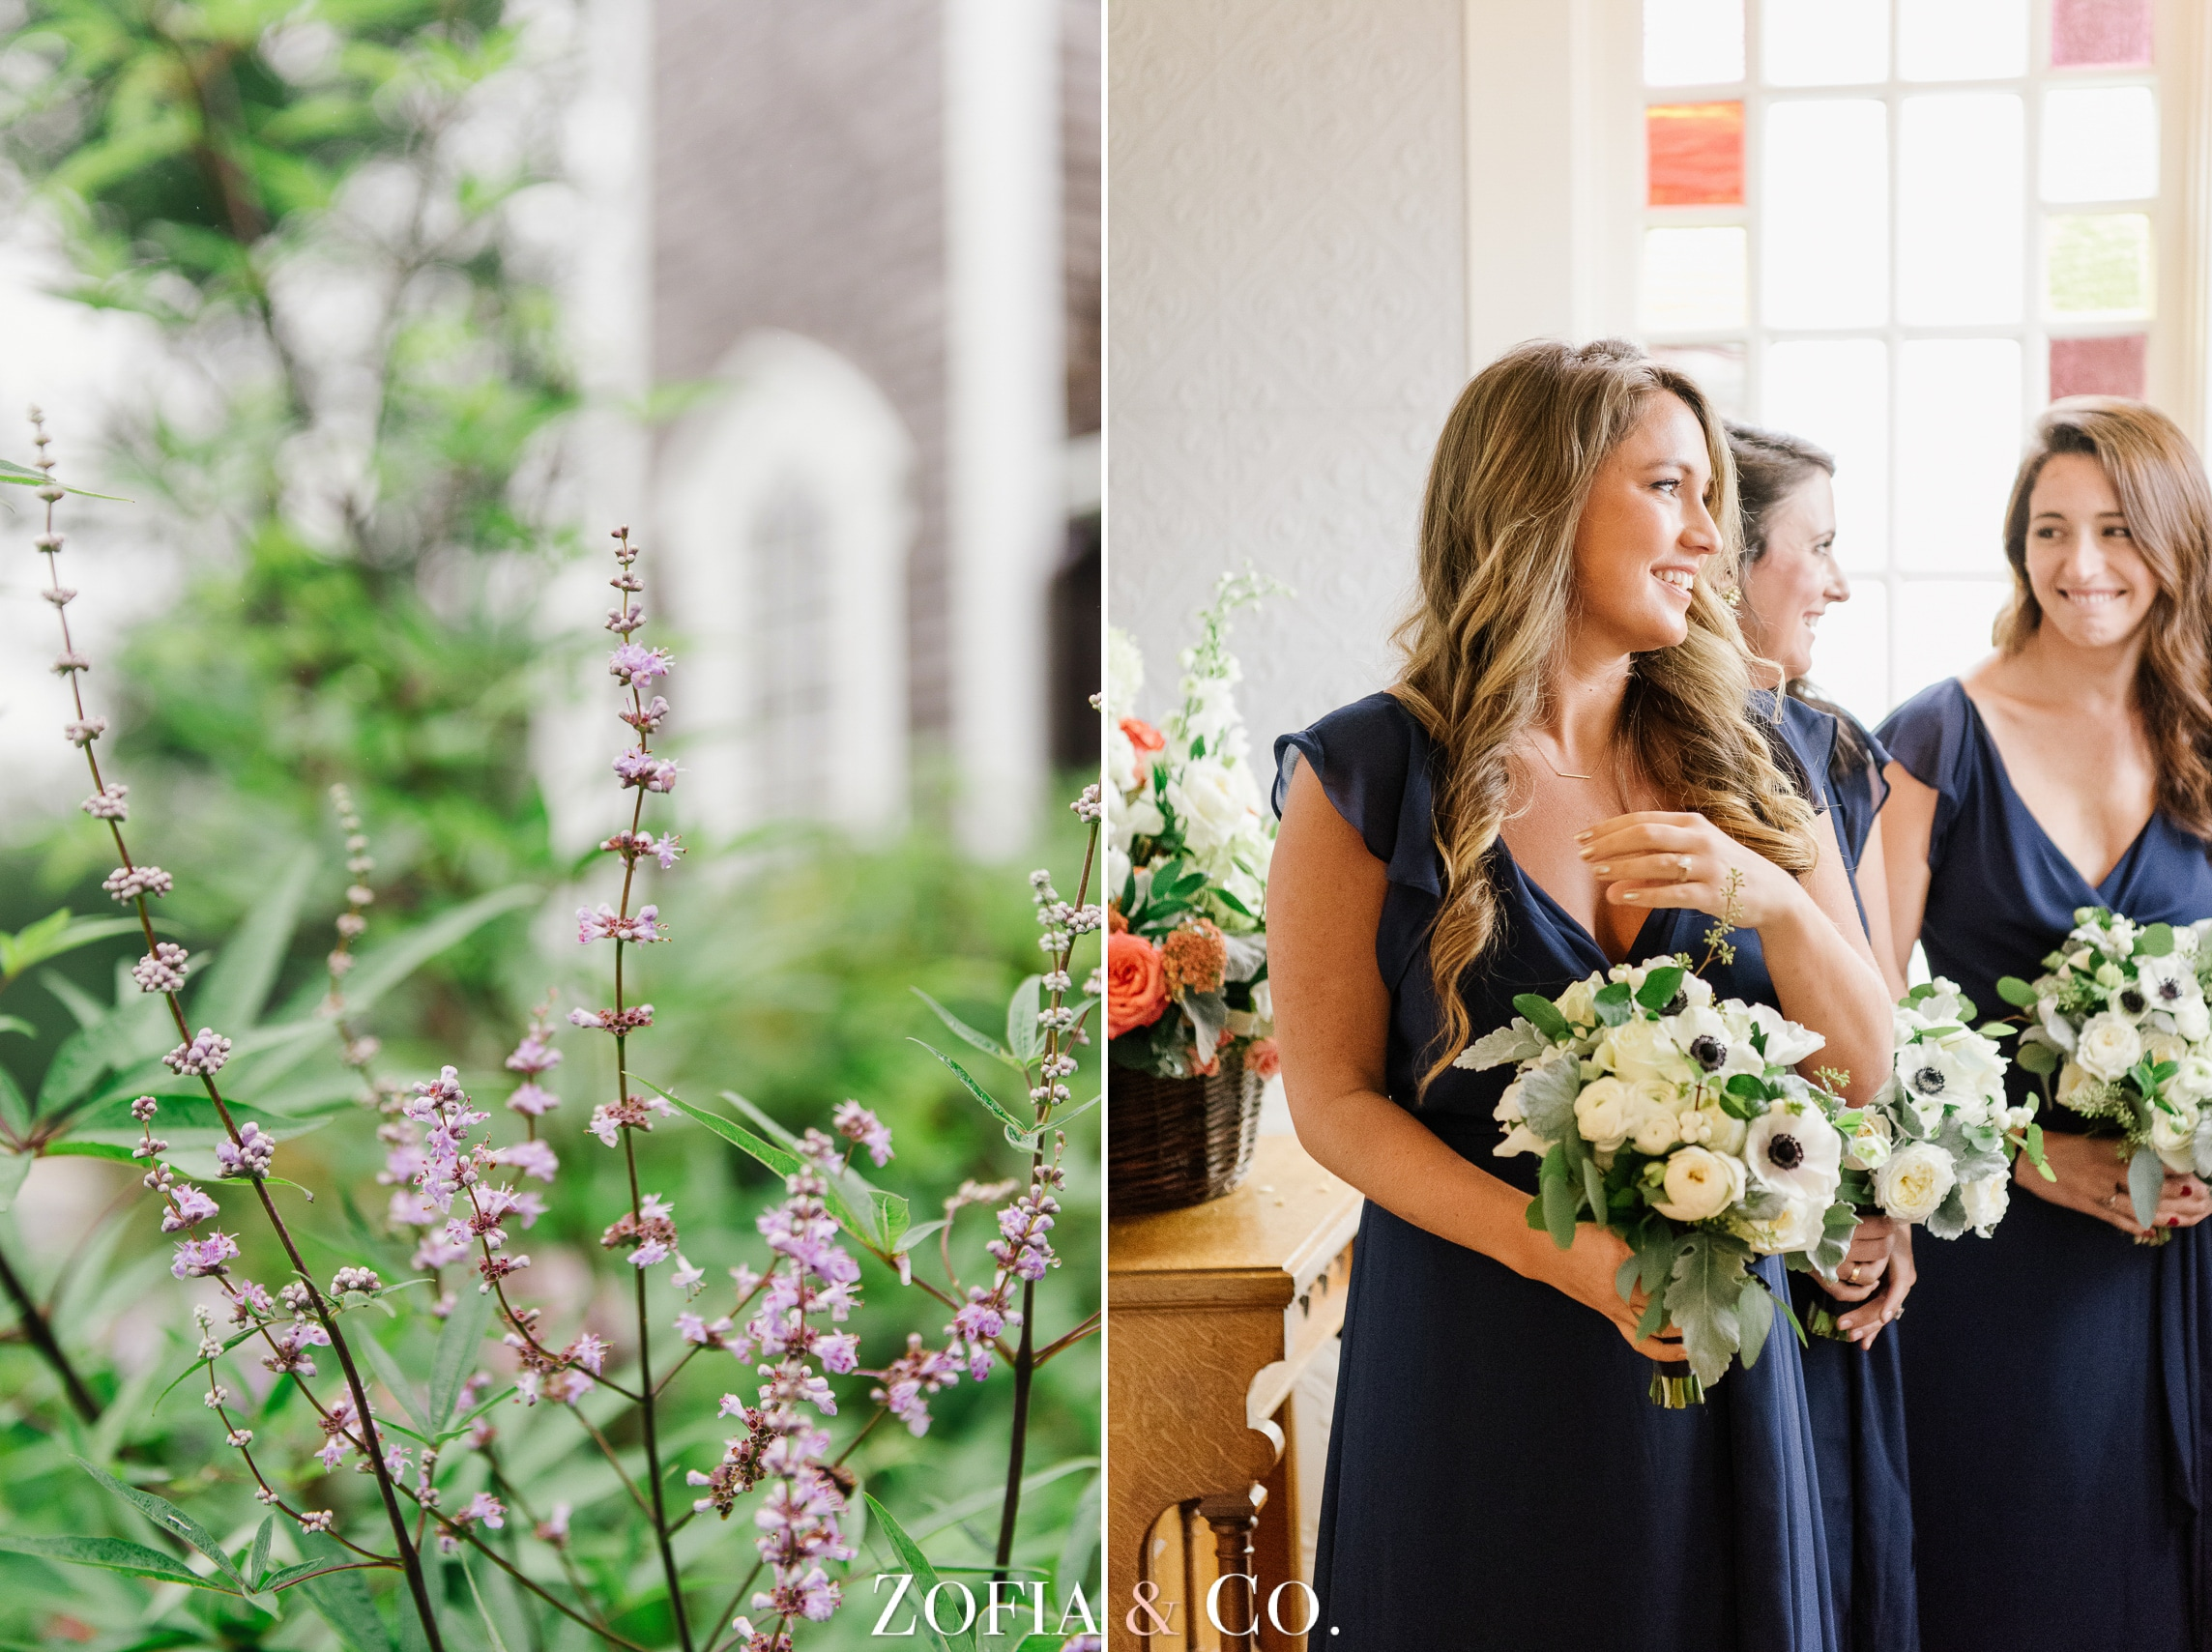 Nantucket wedding at Sconset Chapel and Sankaty Head Golf Club by Zofia and Co.